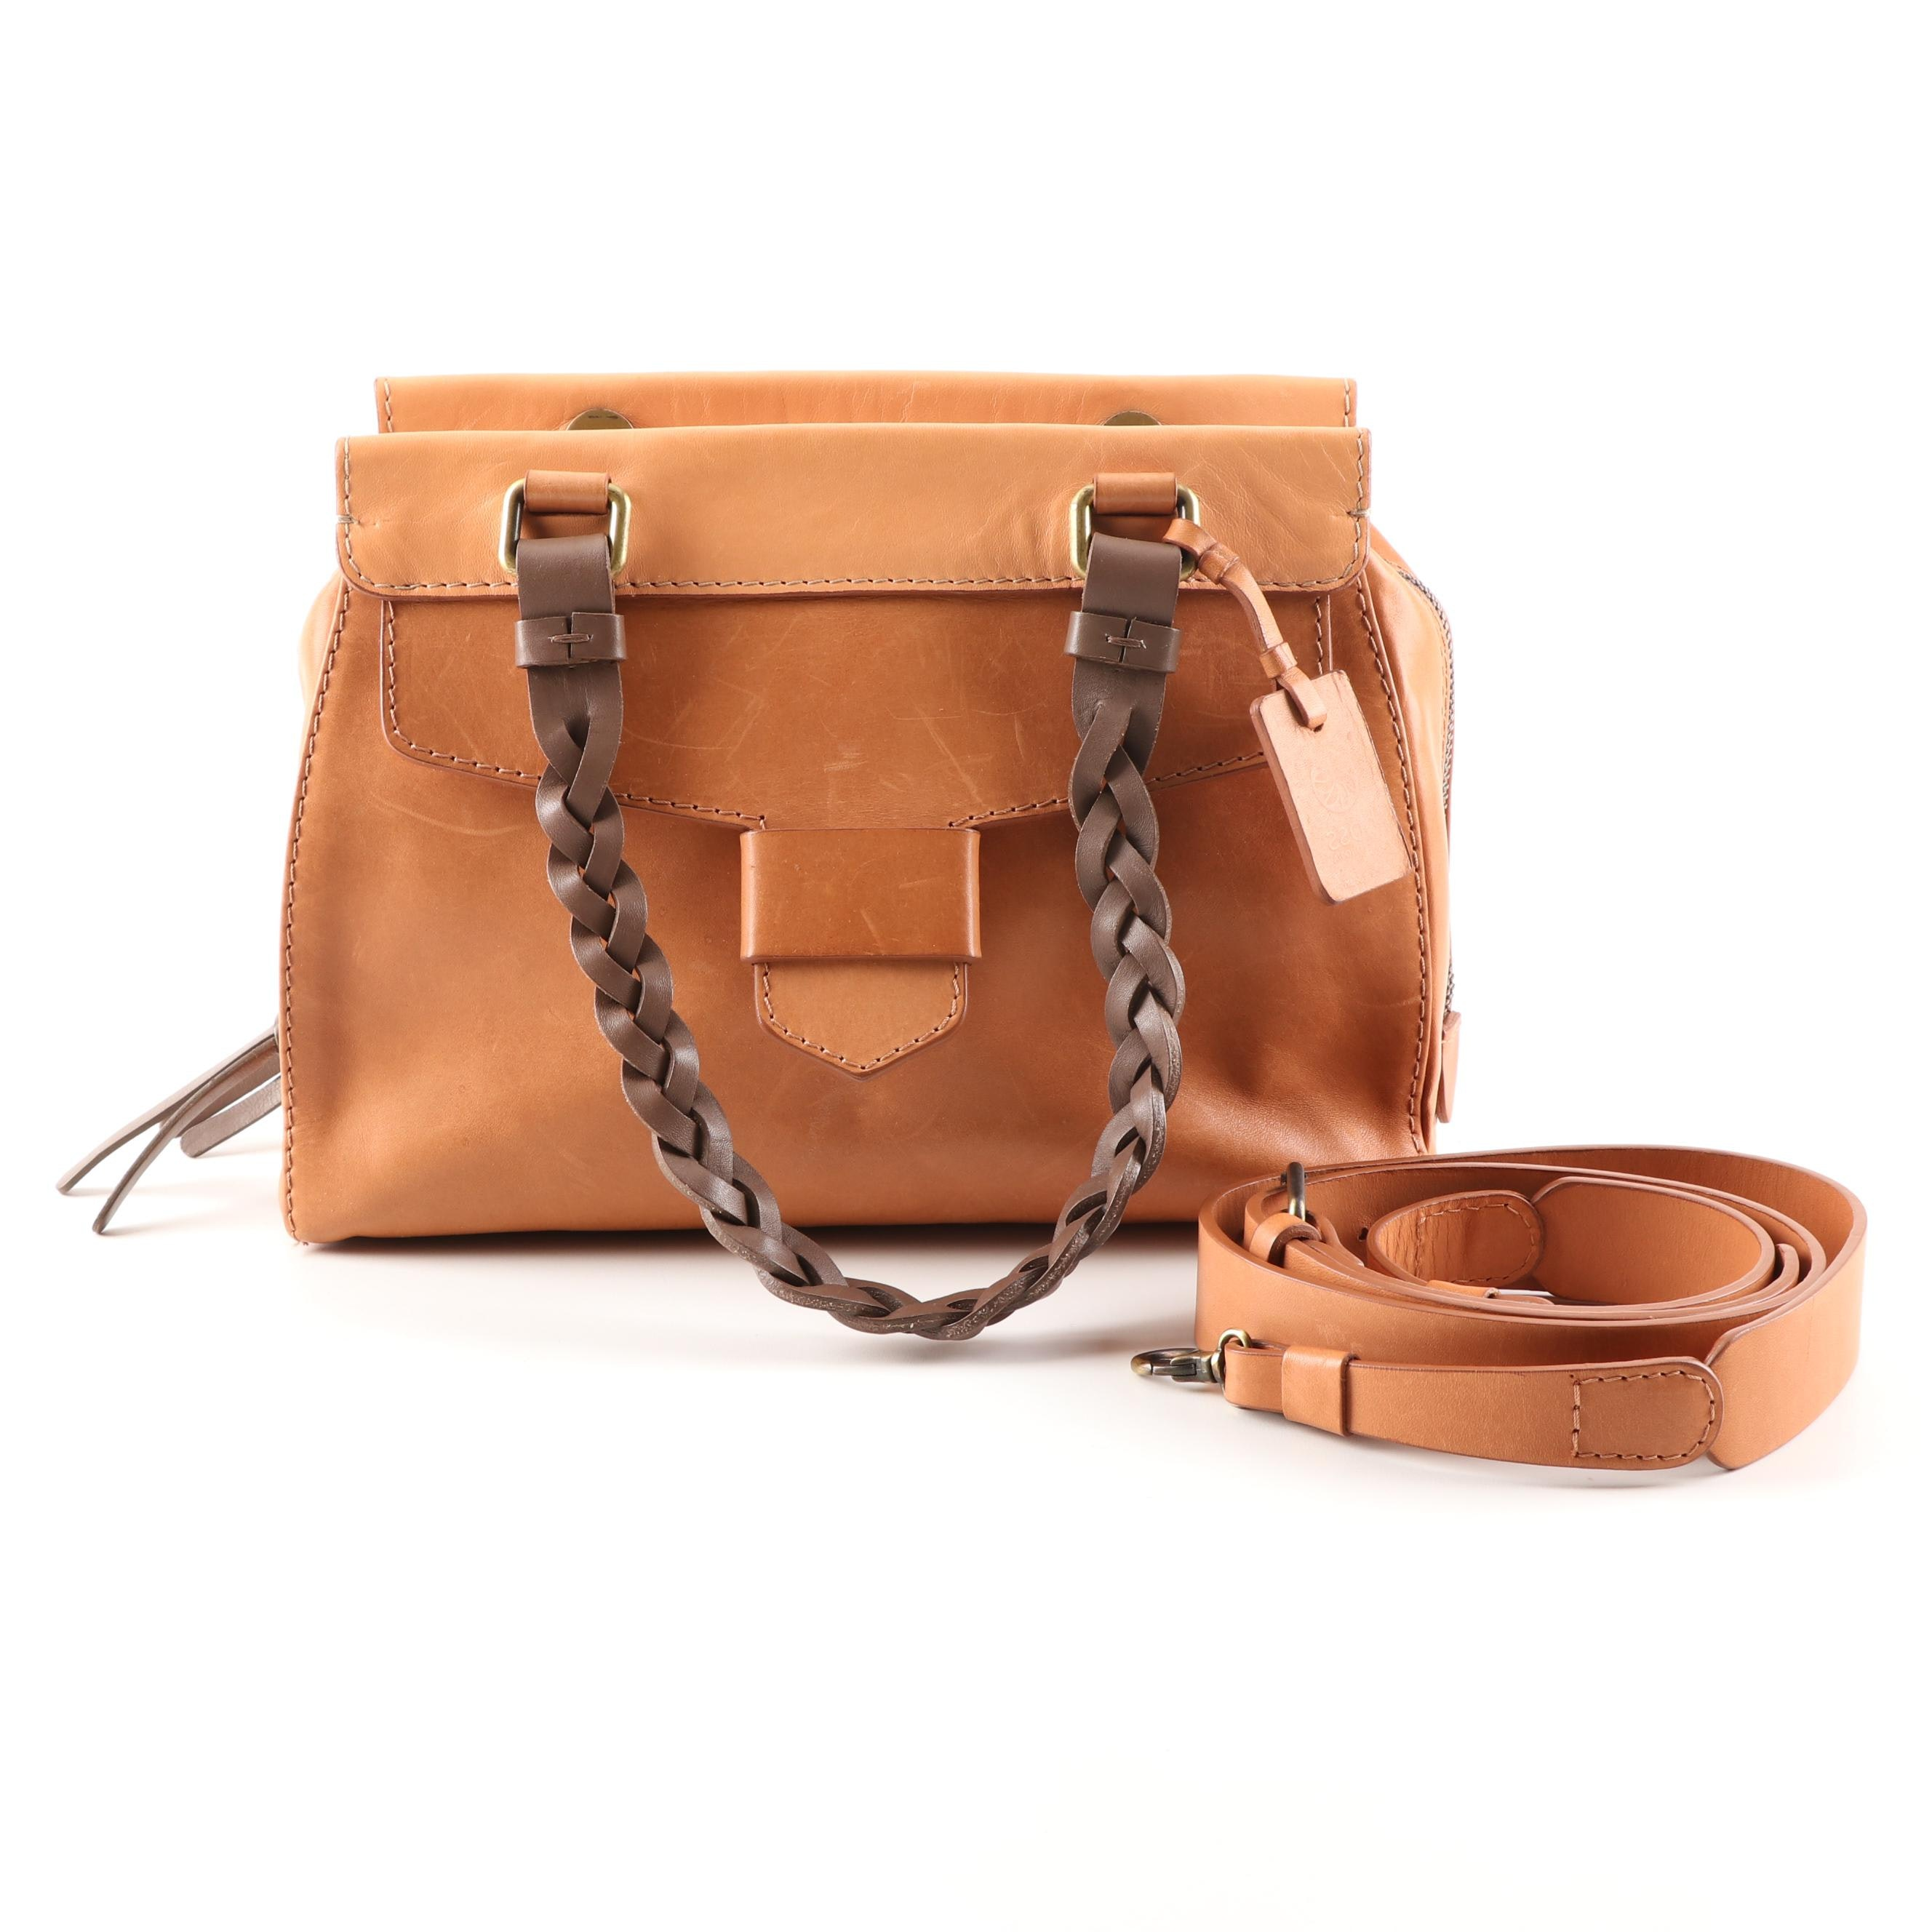 Hoss Intropia Tan Leather Satchel with Dark Brown Braided Leather Strap